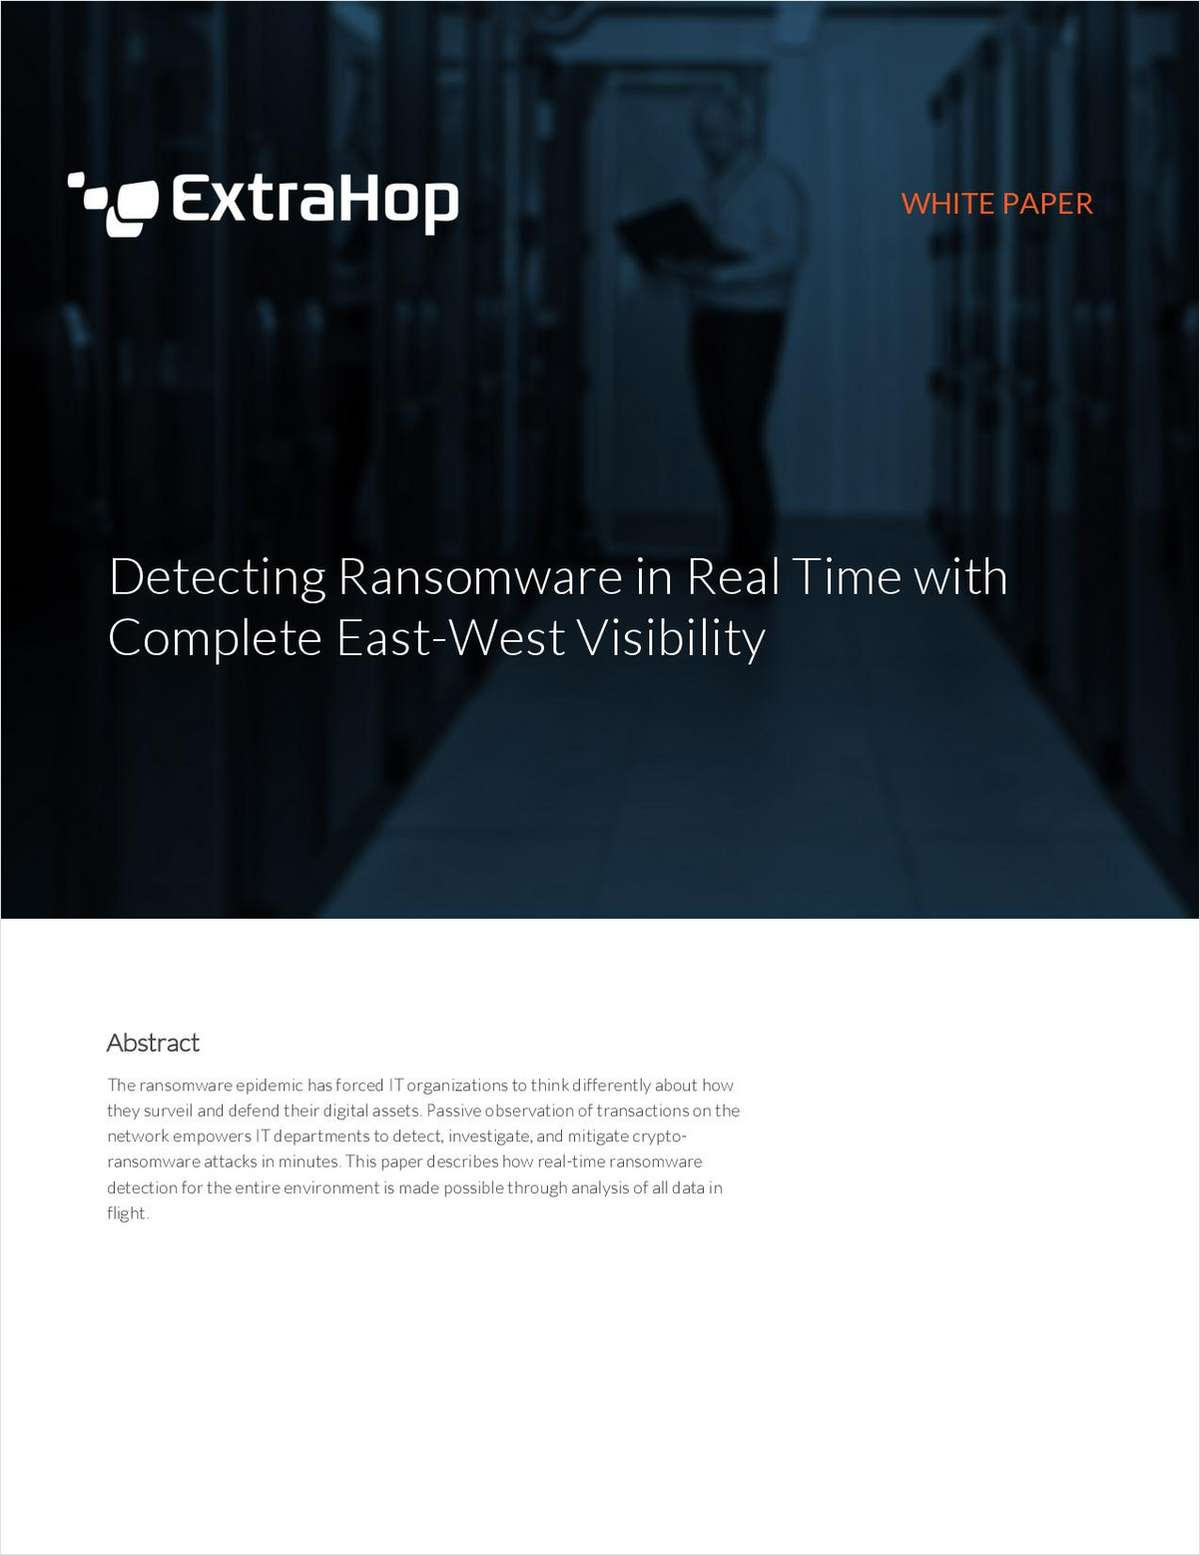 Detecting Ransomware in Real Time with Complete East-West Visibility